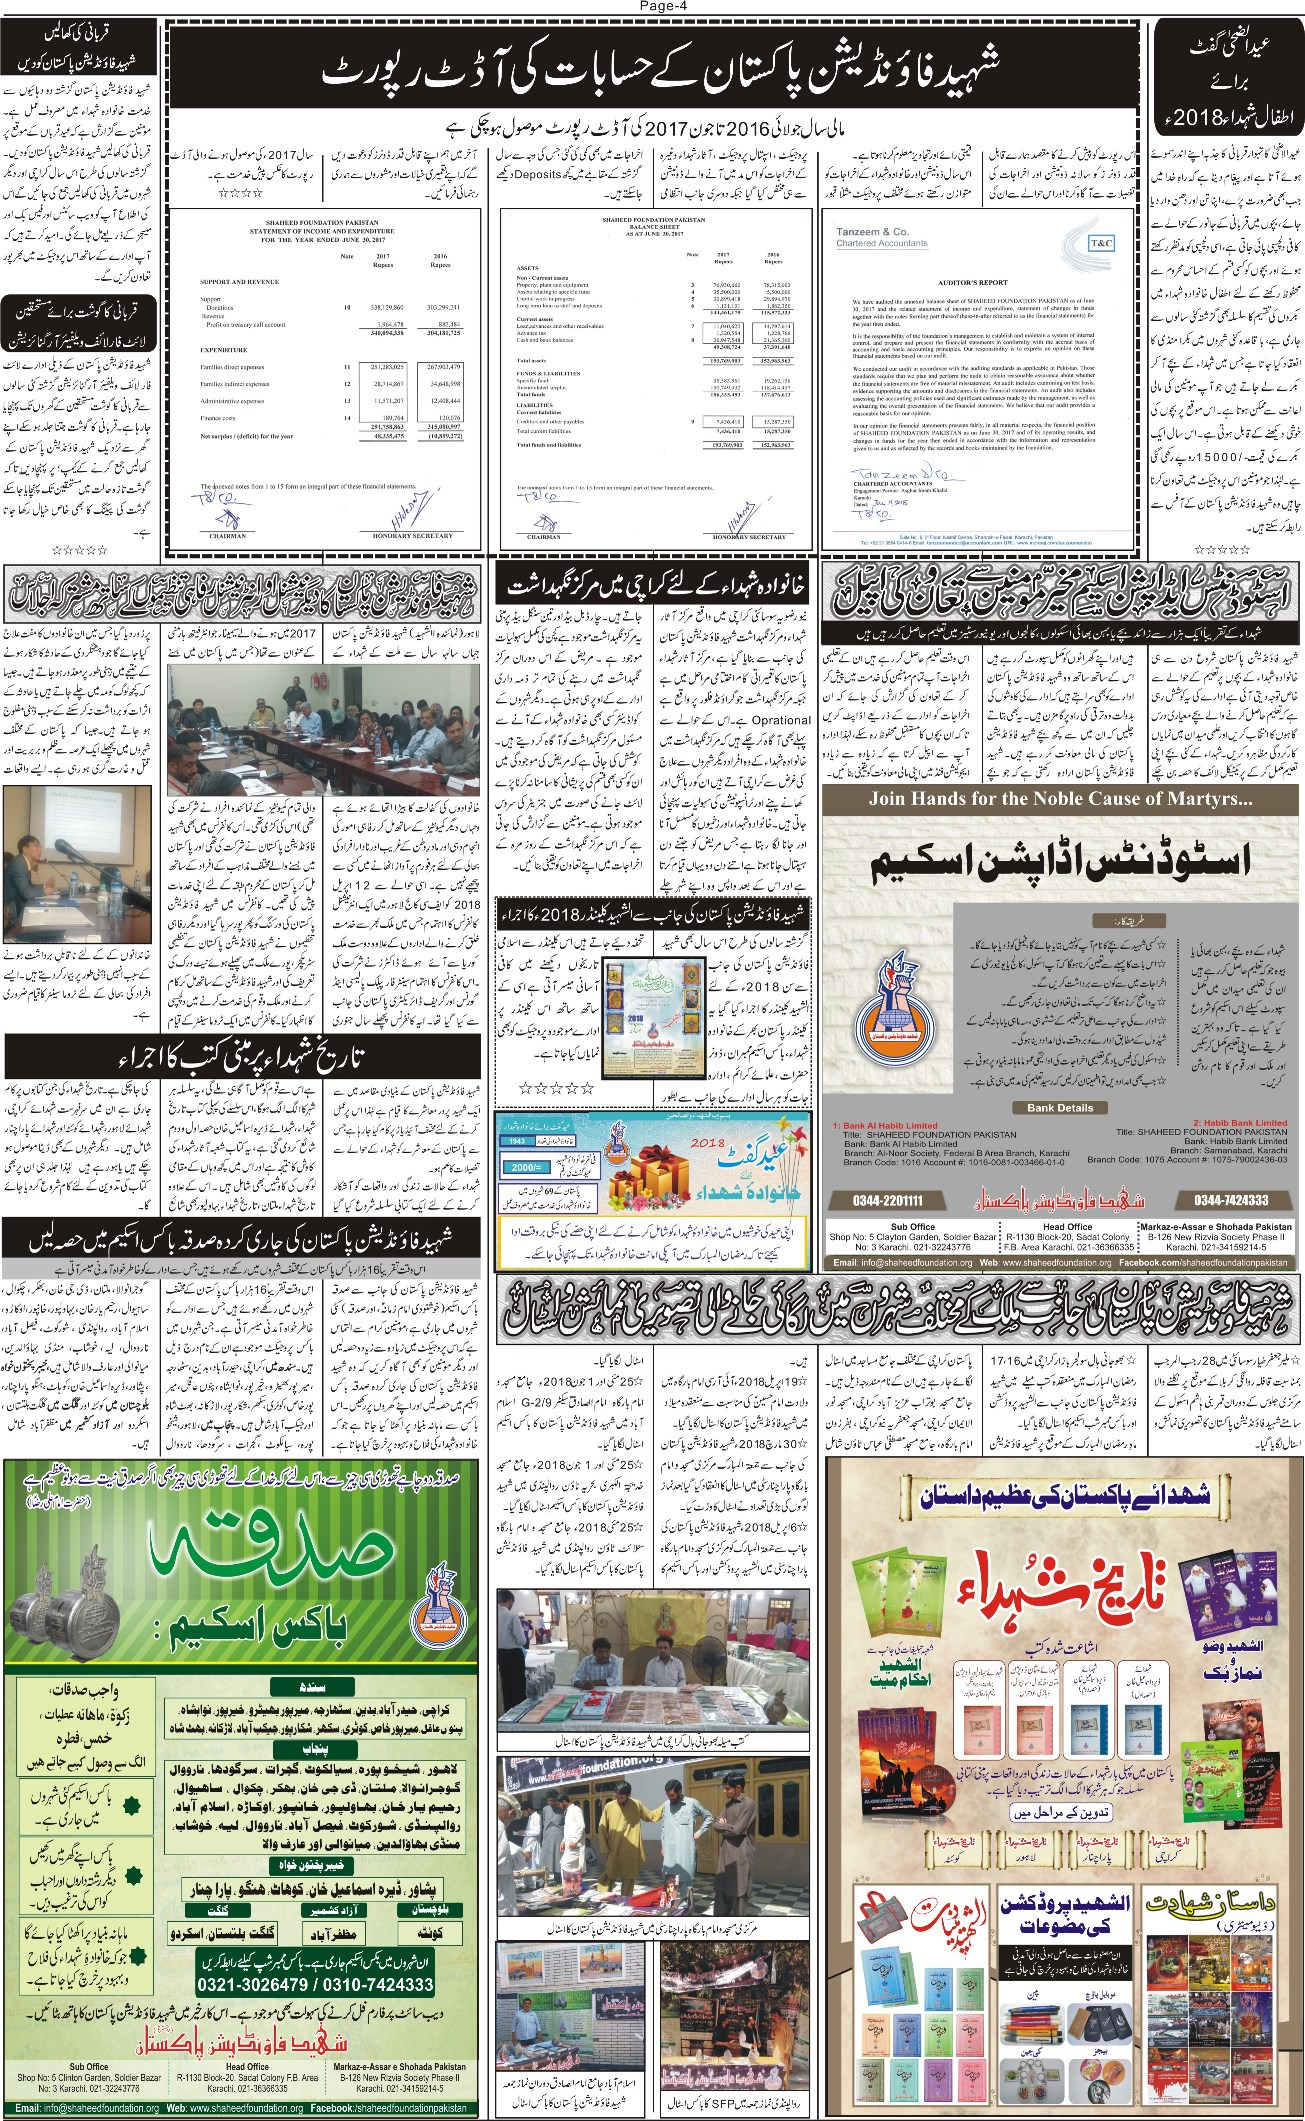 Al Shaheed News paper (June 2018) Issue